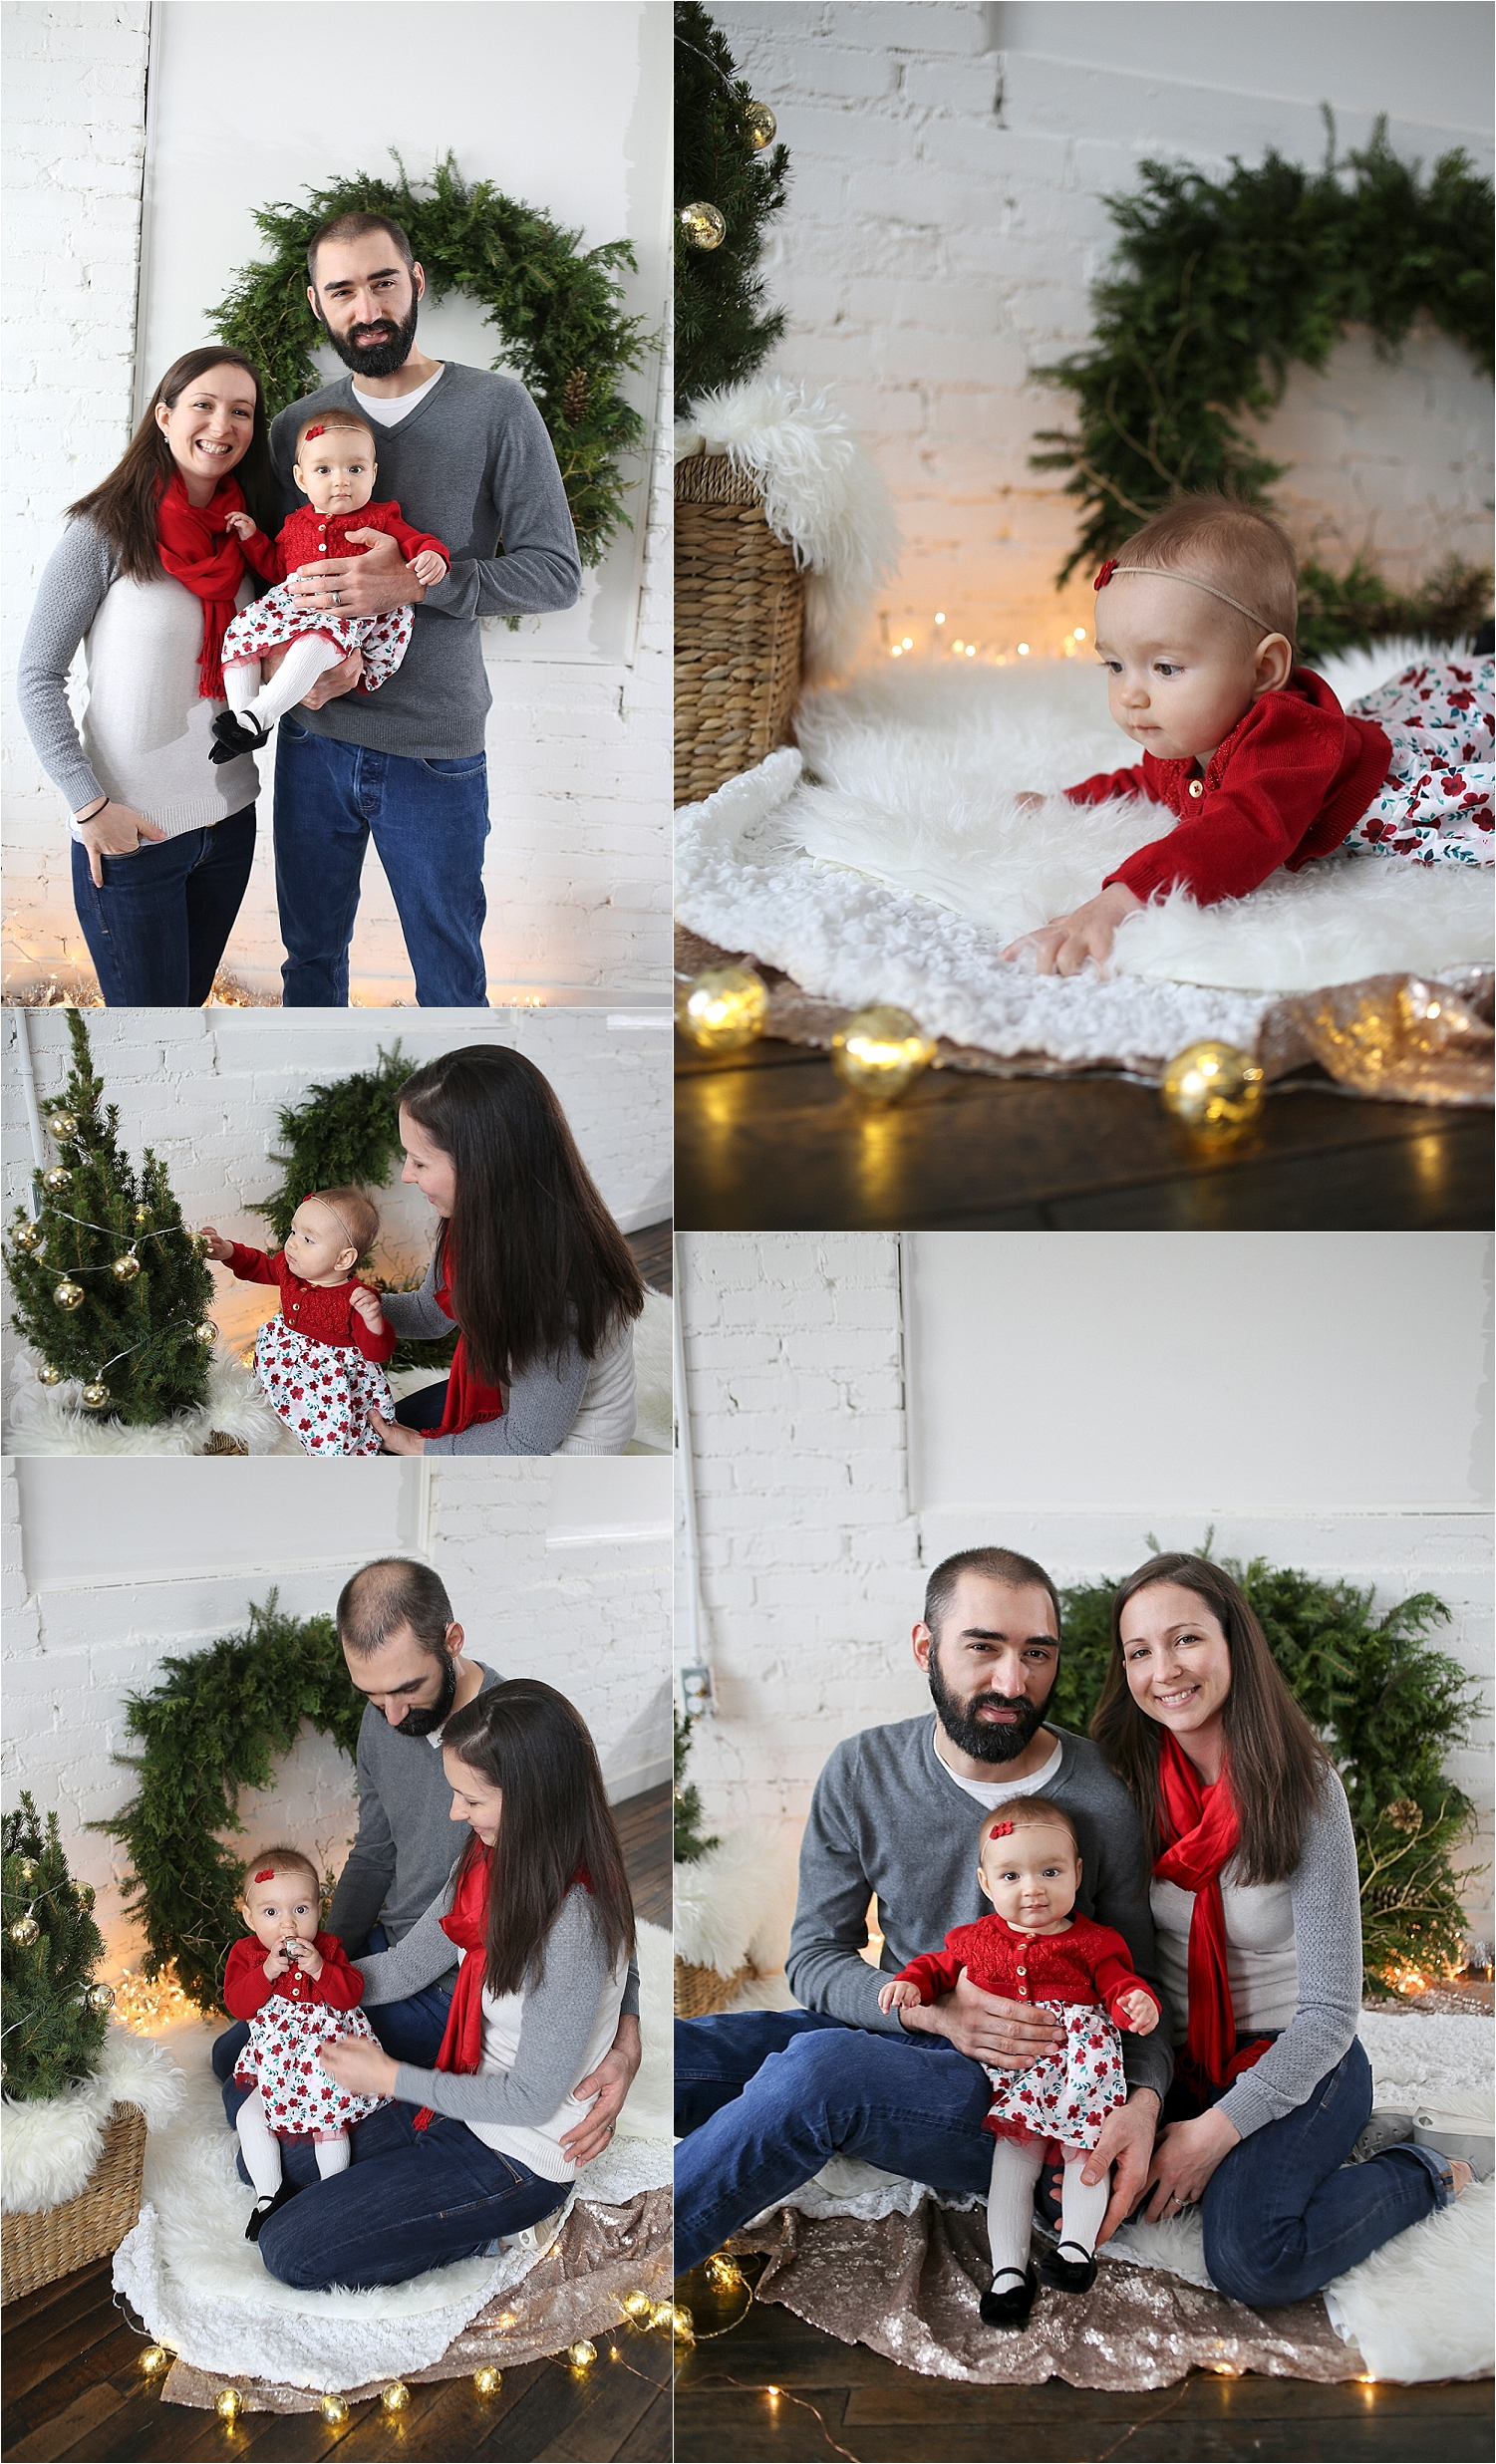 Blacksburg-Family-Photographer-Christmas-Photos_0005.jpg